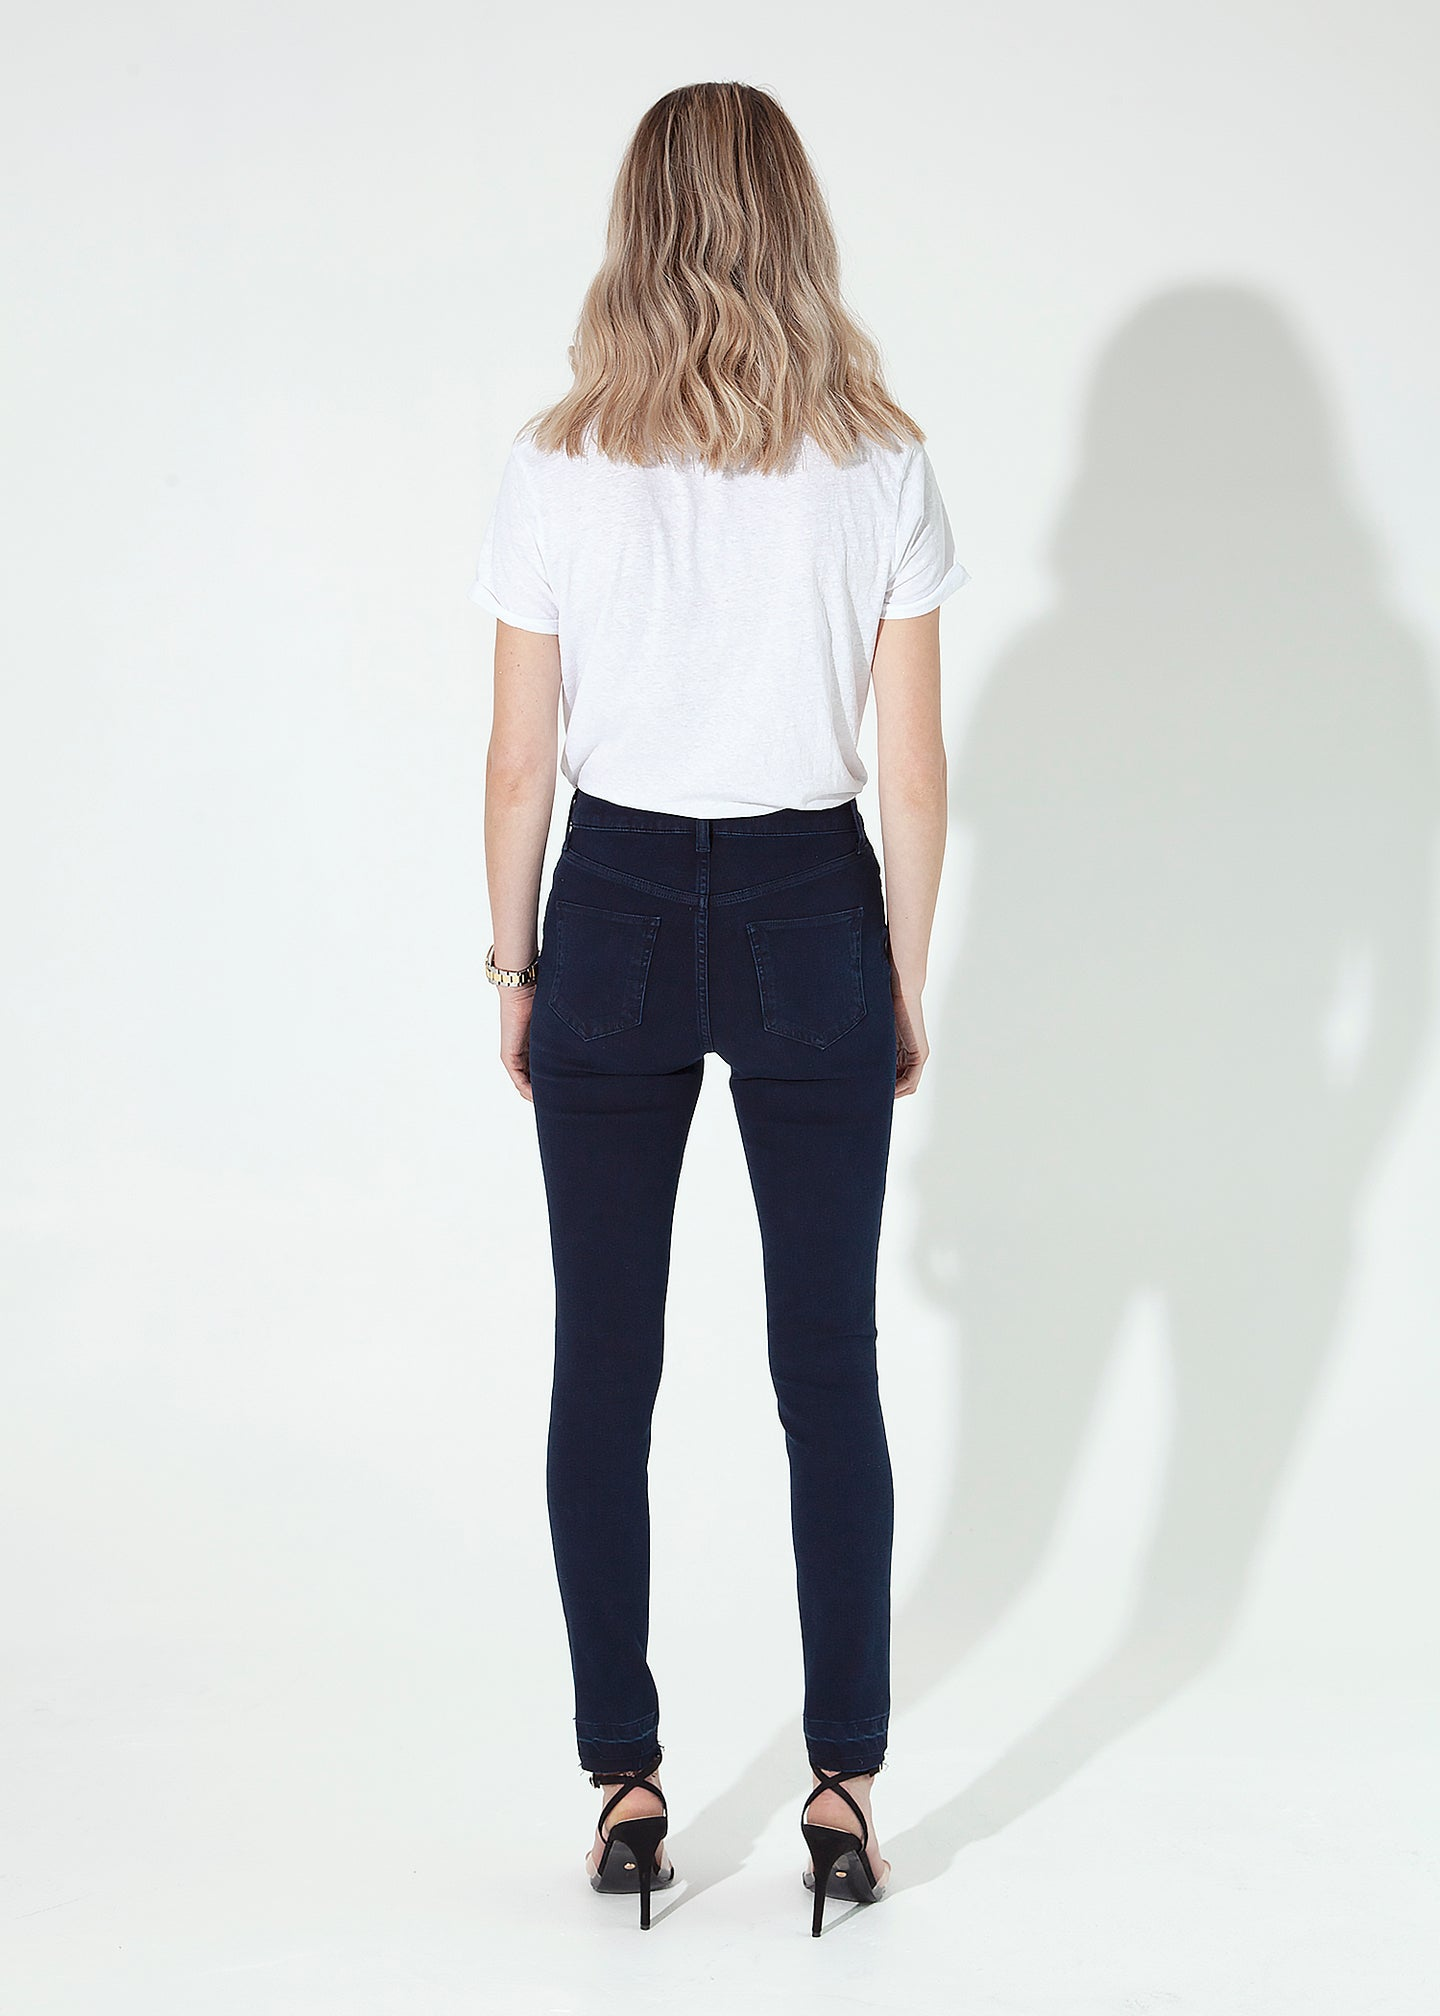 Rizzo The High Top Ankle Skinny Jeans - Release Me I'm Yours